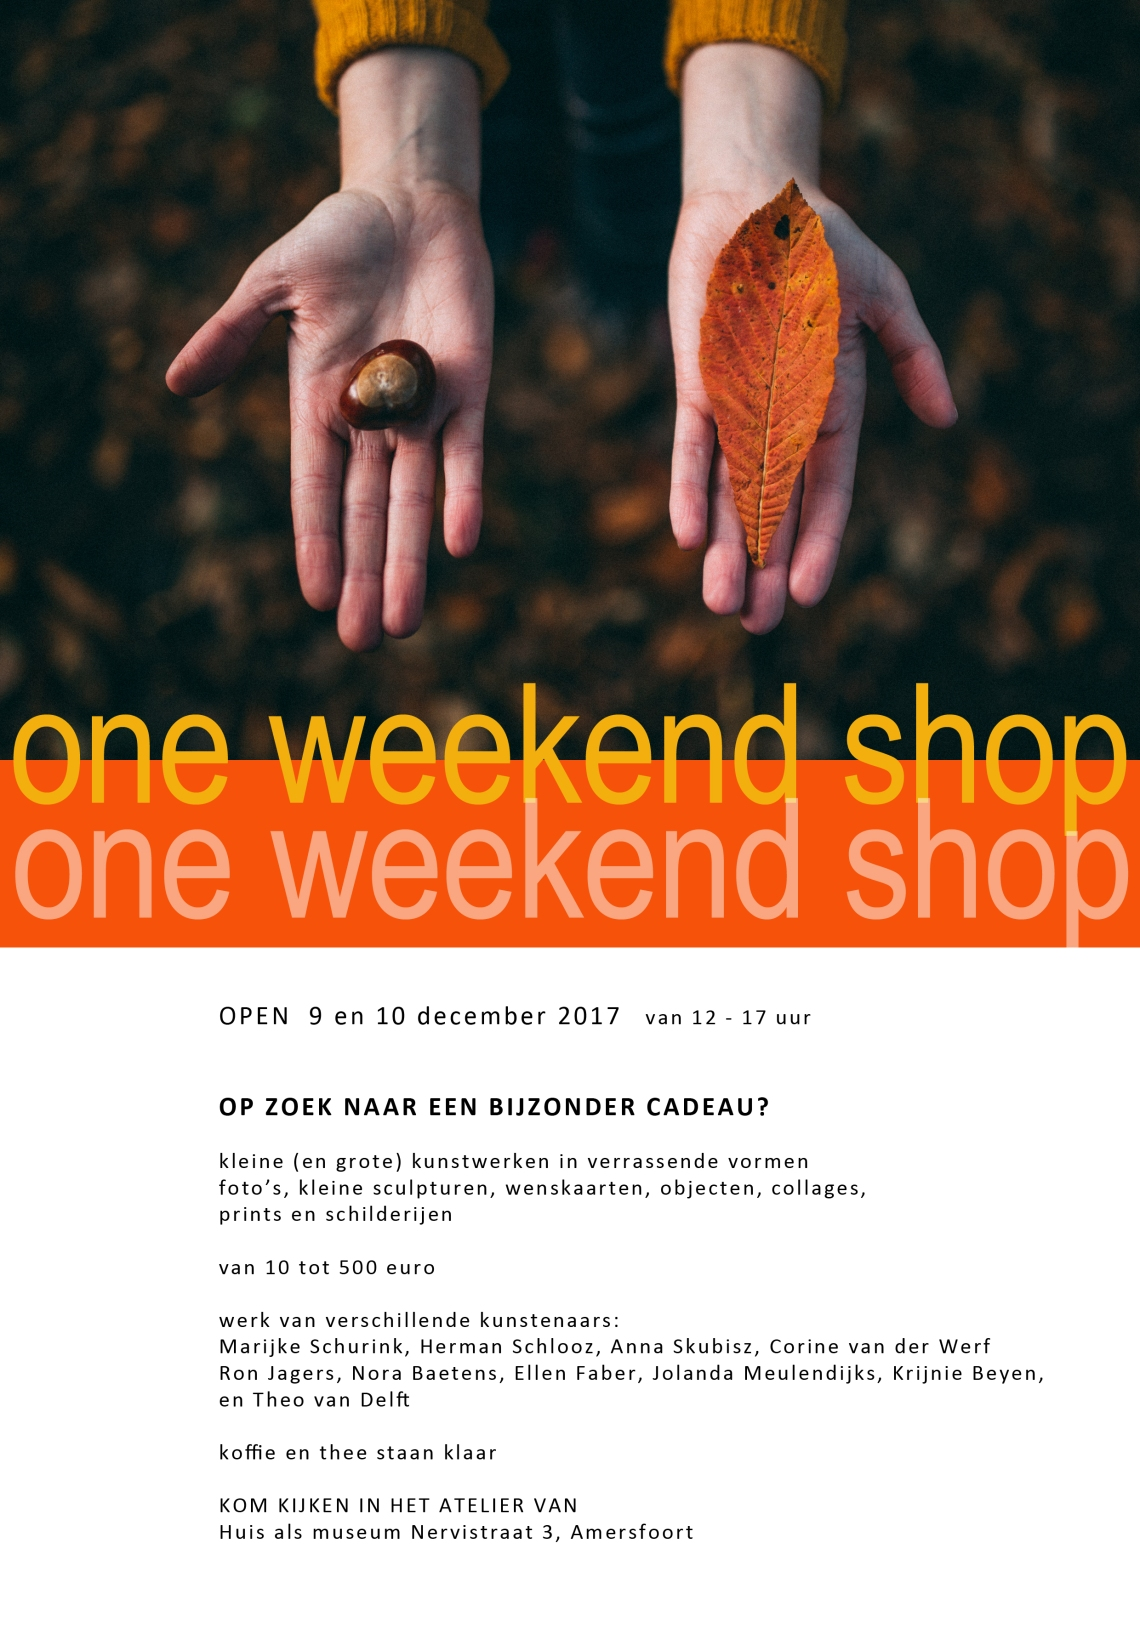 affiche One weekend shopkopie